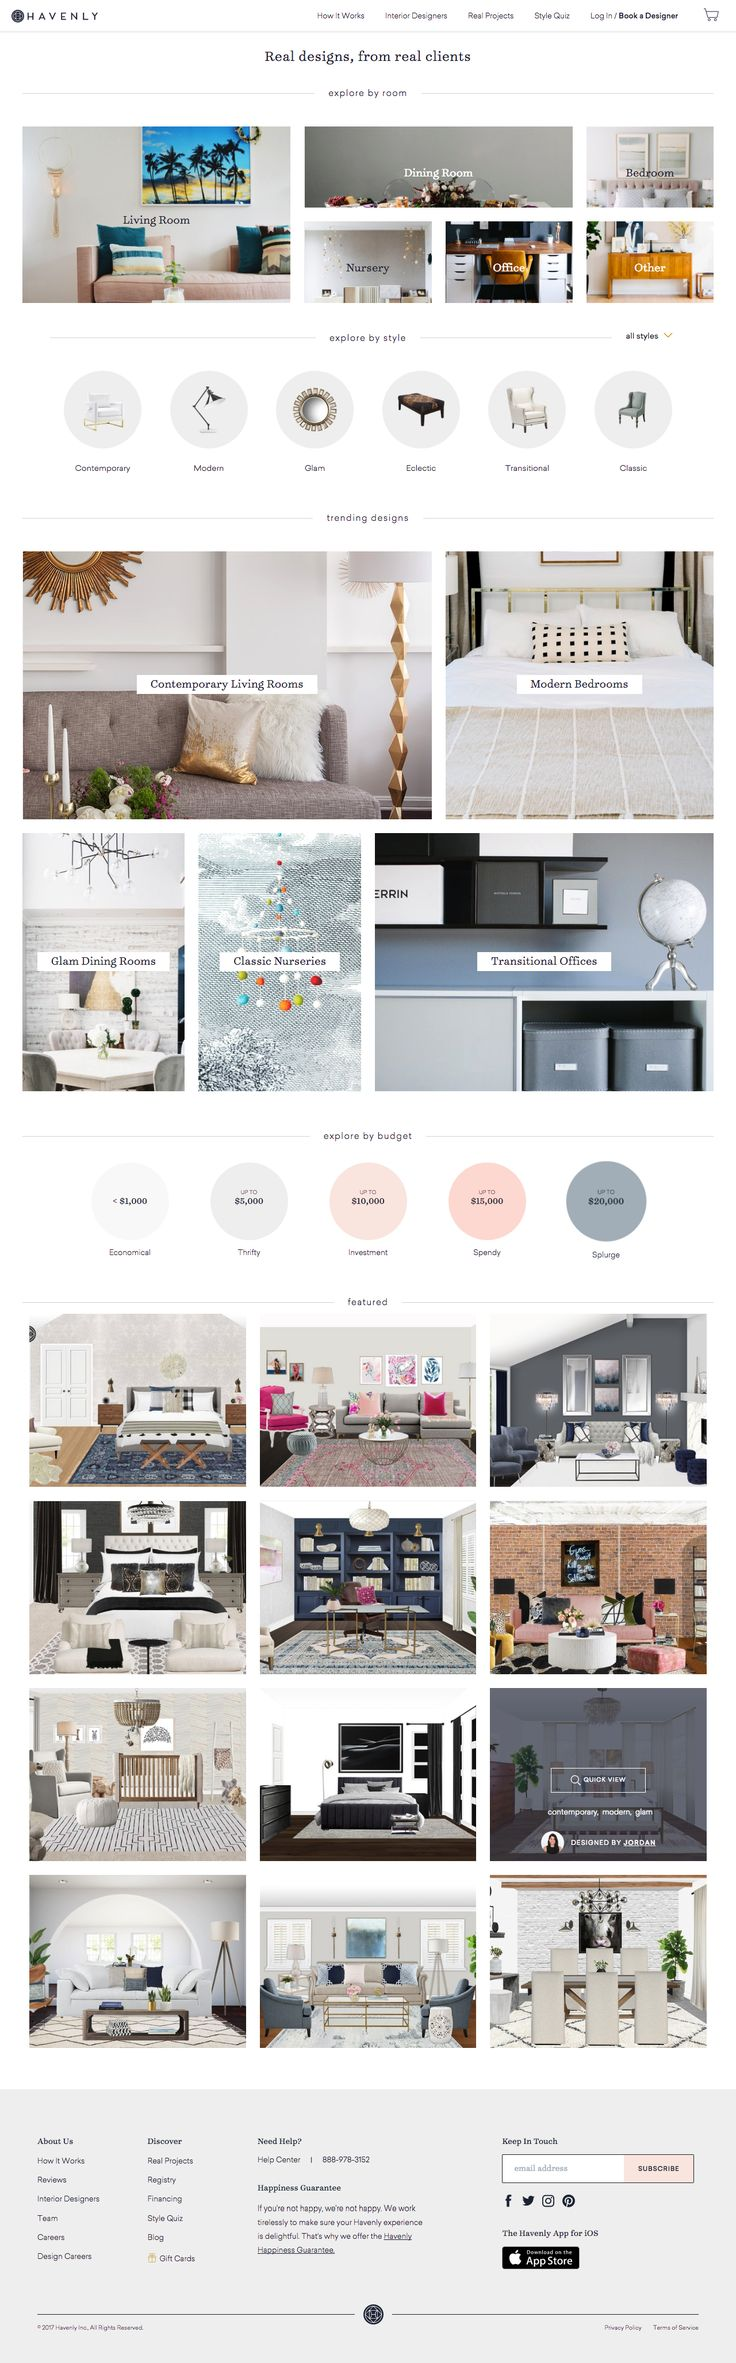 Interior Design & Decorating Ideas | Havenly | Awesome Screenshot